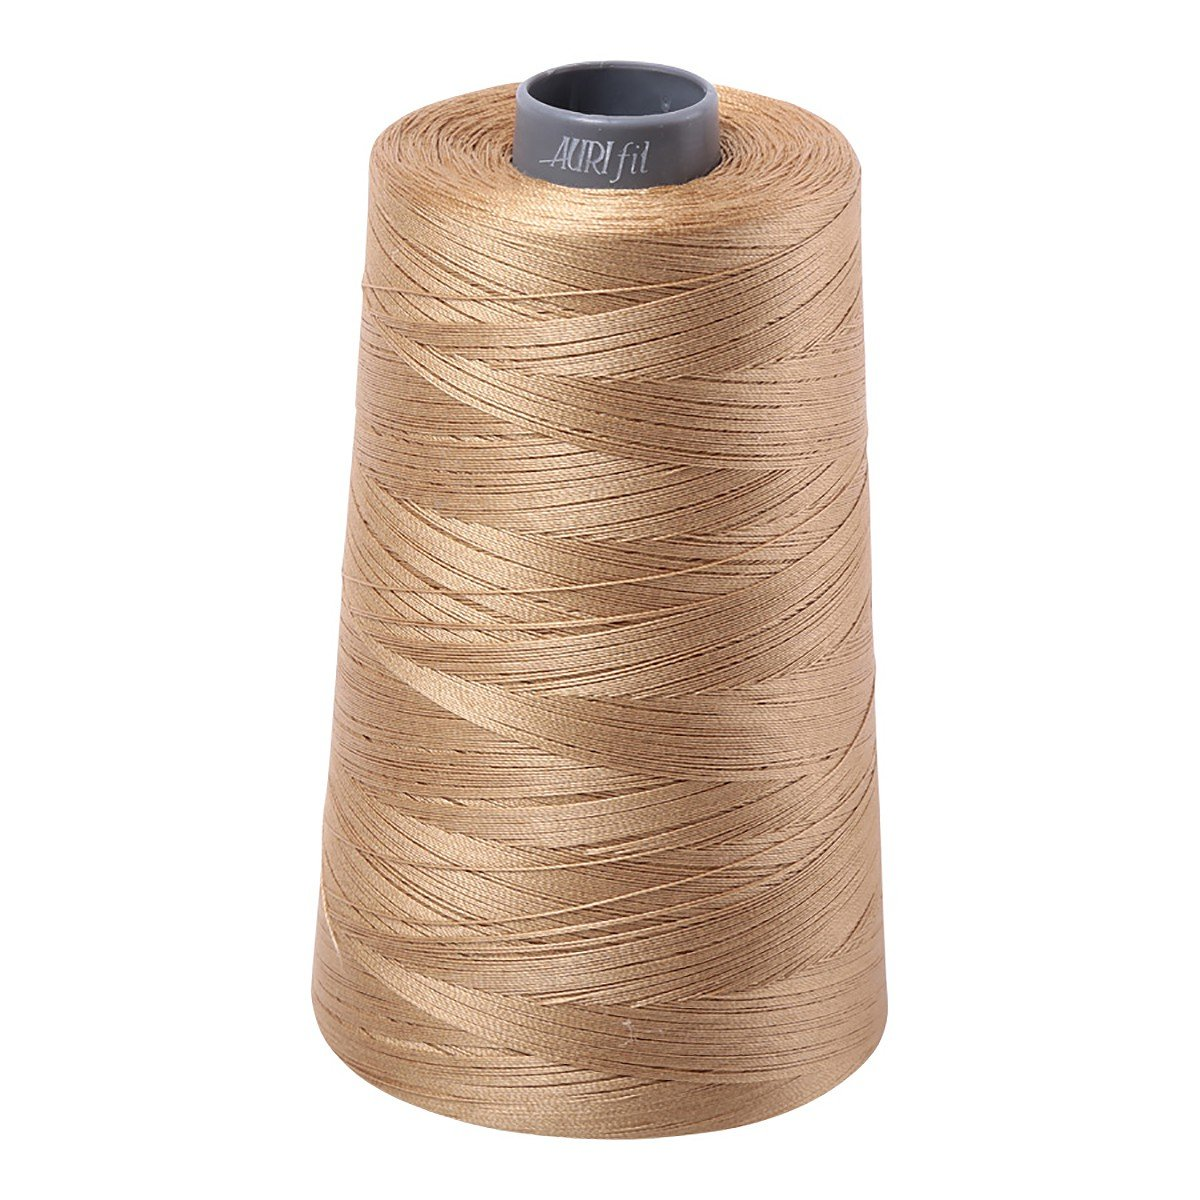 Mako (Cotton) Embroidery Thread 28wt 3609yds Blond Beige